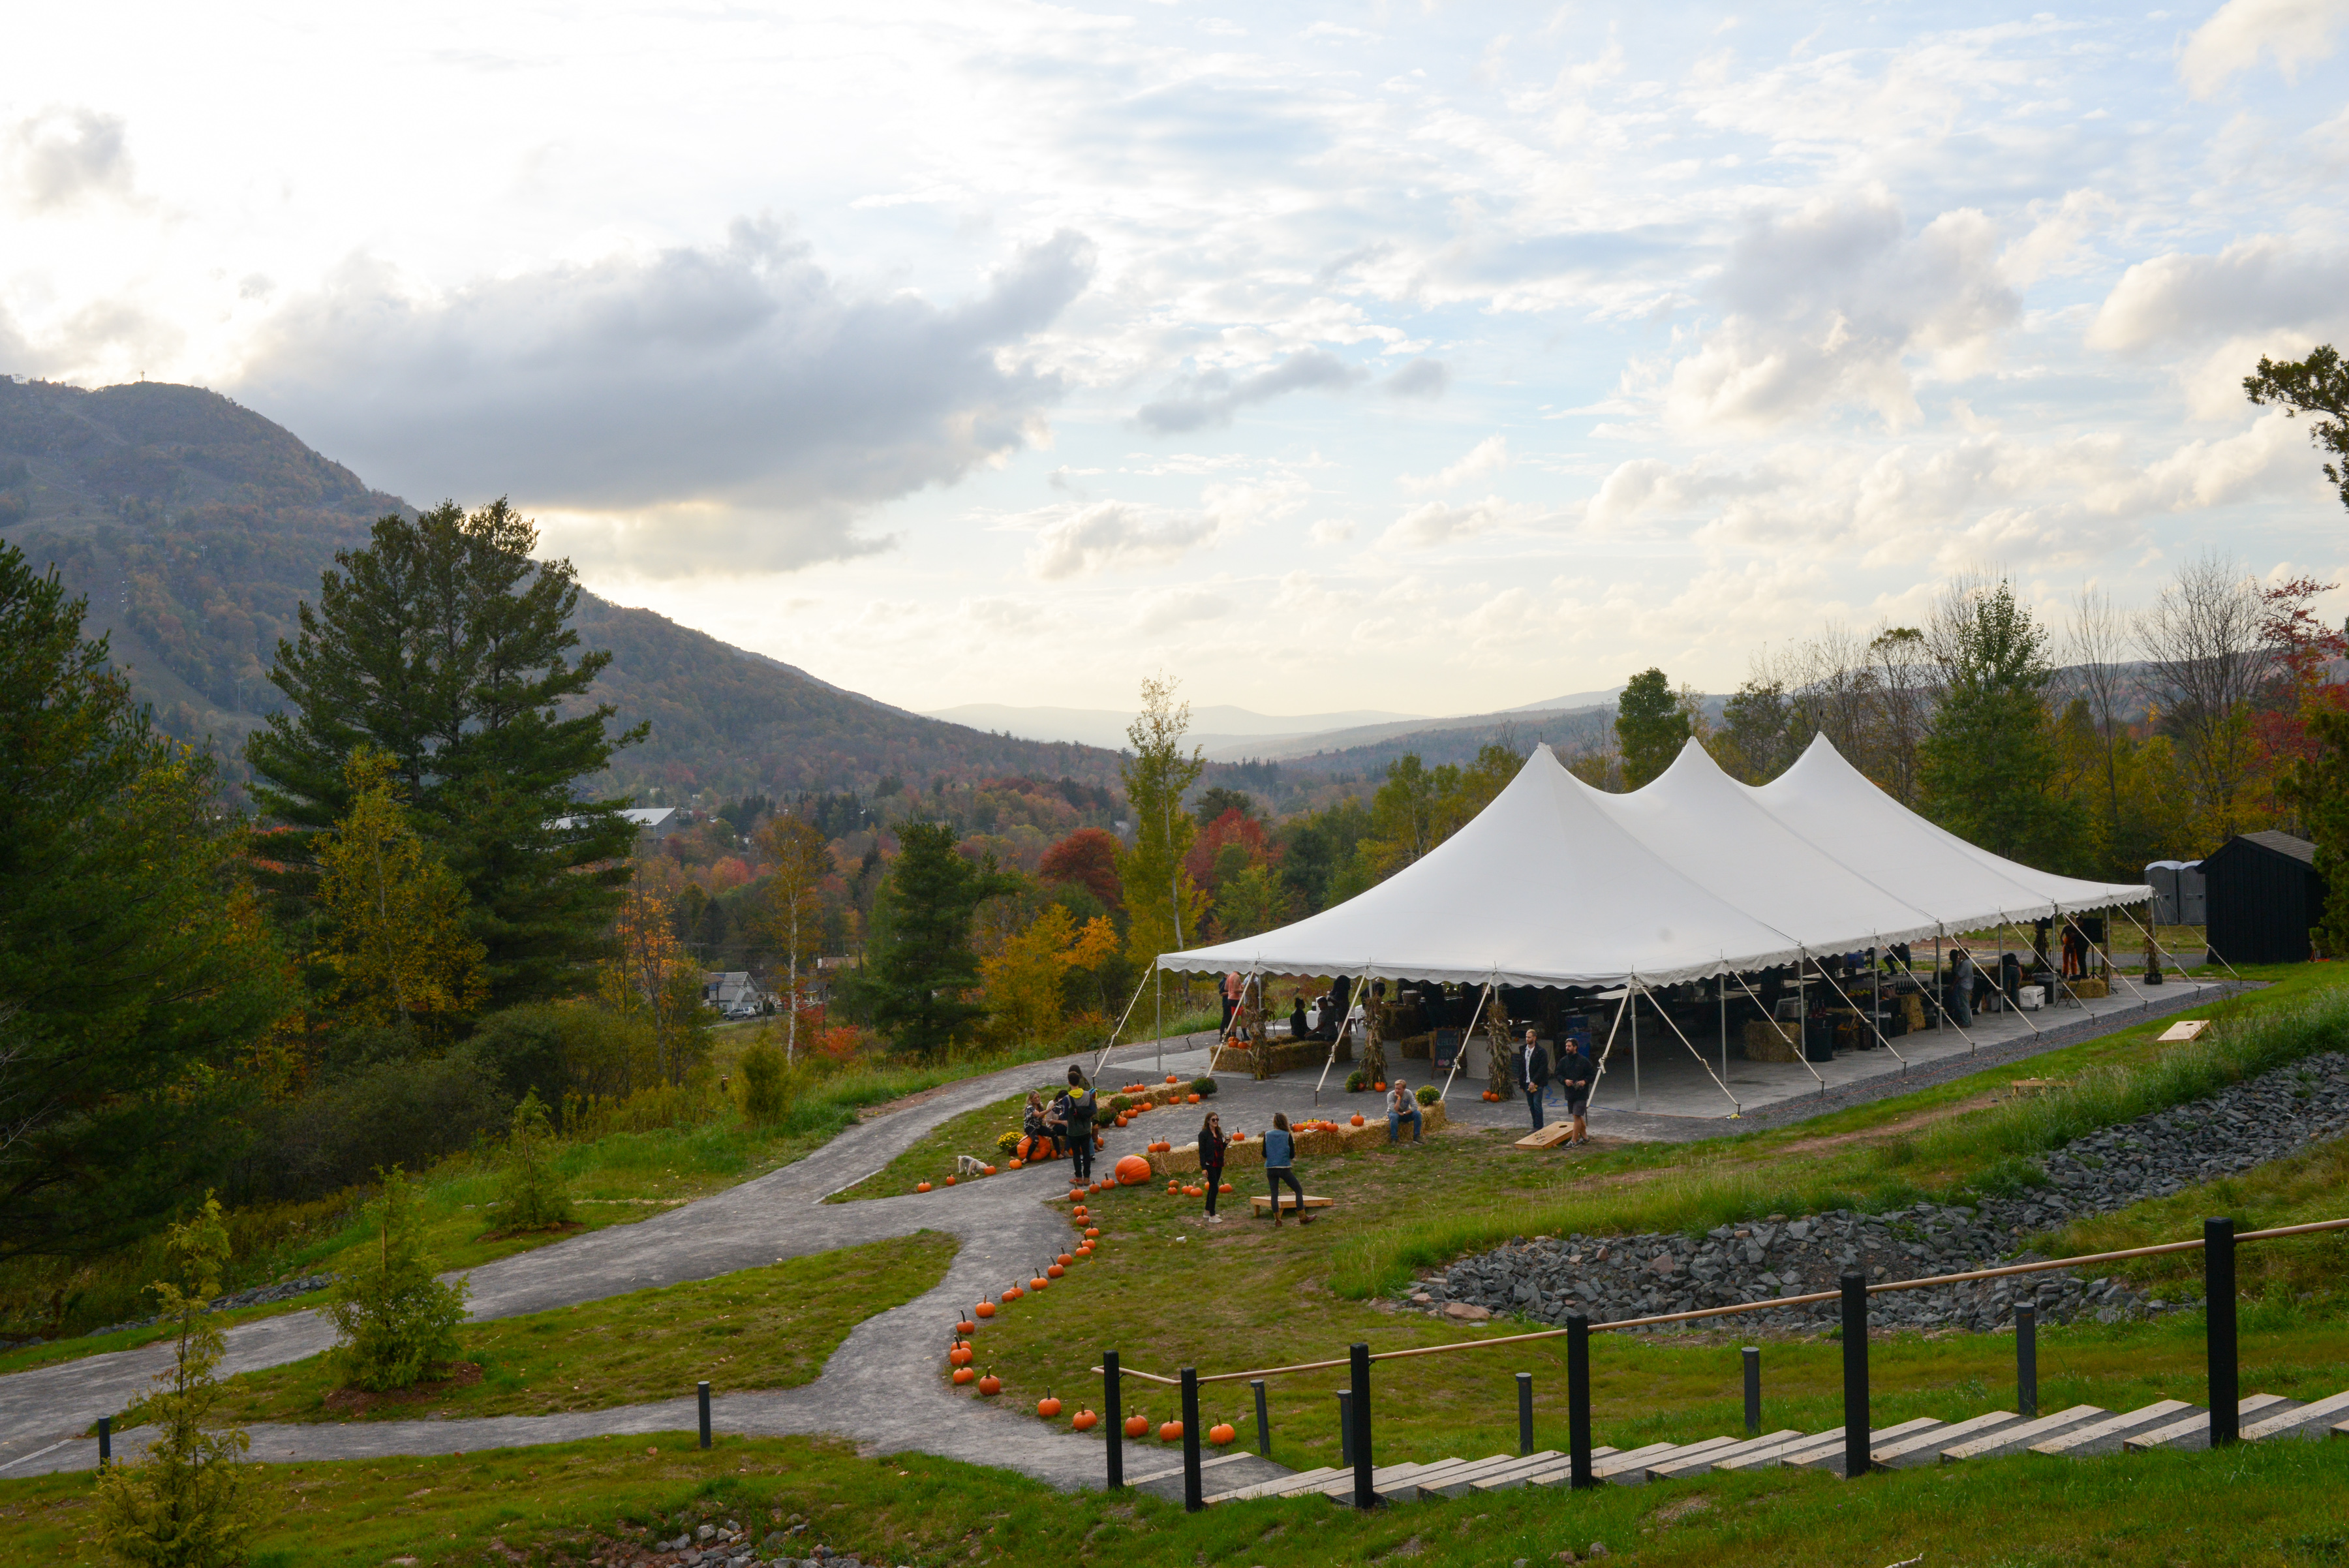 cider in the mountains 2018